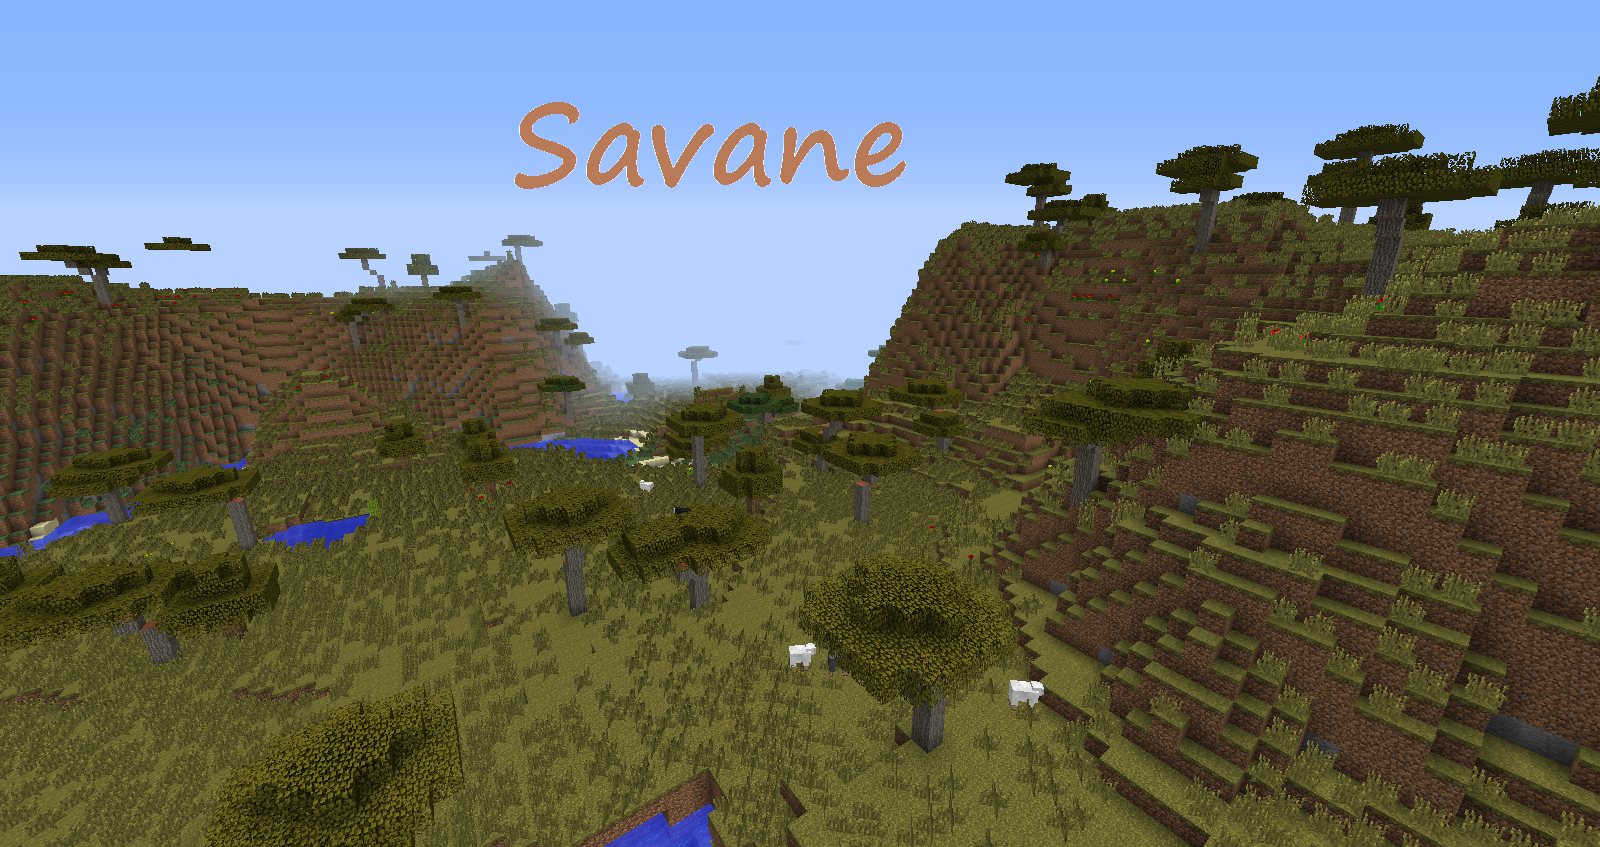 minecraft savanna